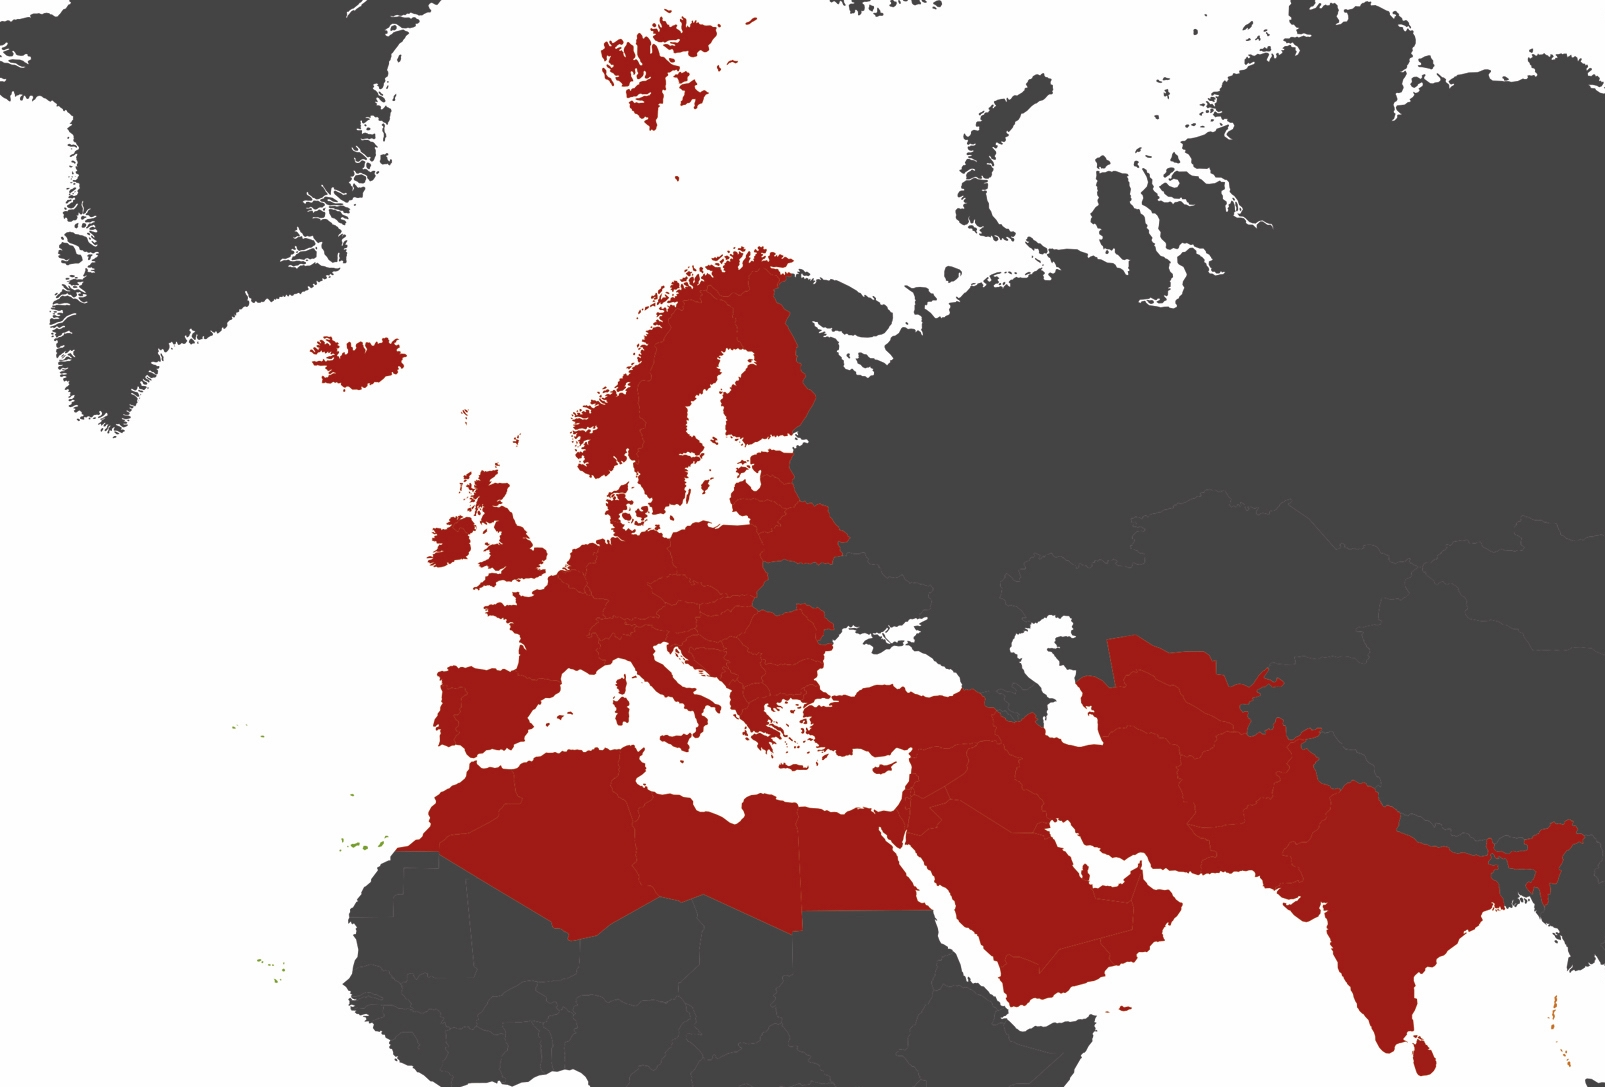 European Prayer Conference Map